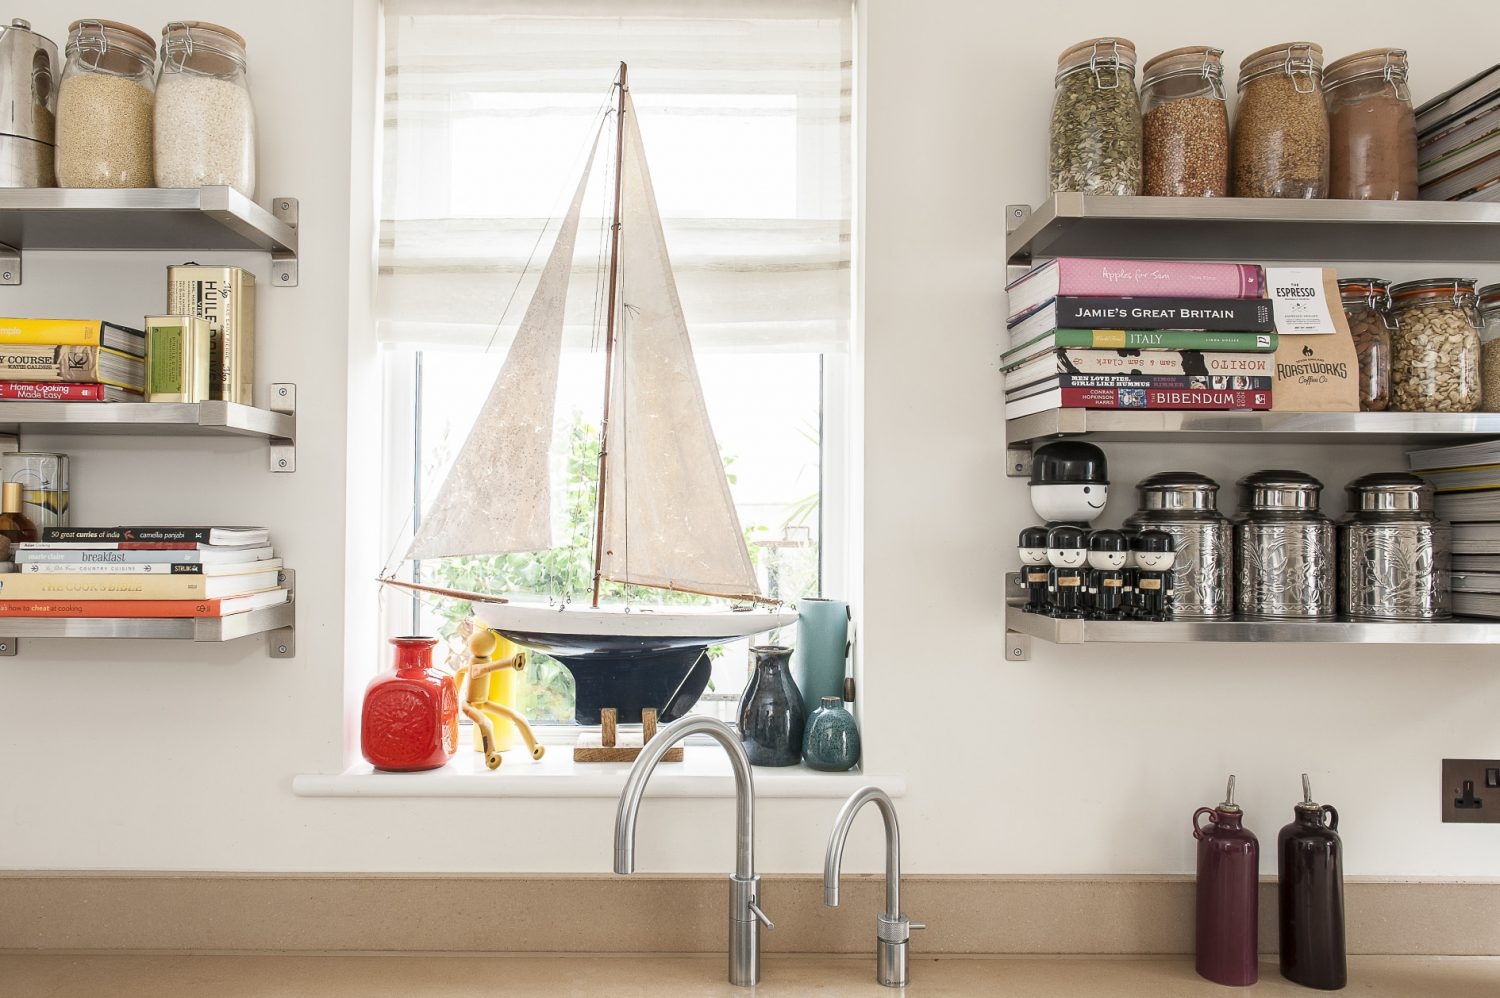 The neutral, simple kitchen units are from Krieder in Tunbridge Wells with open shelving as a design feature in itself and home to colourful ingredients and recipes books, as well as a collection of retro Homepride 'Freds'